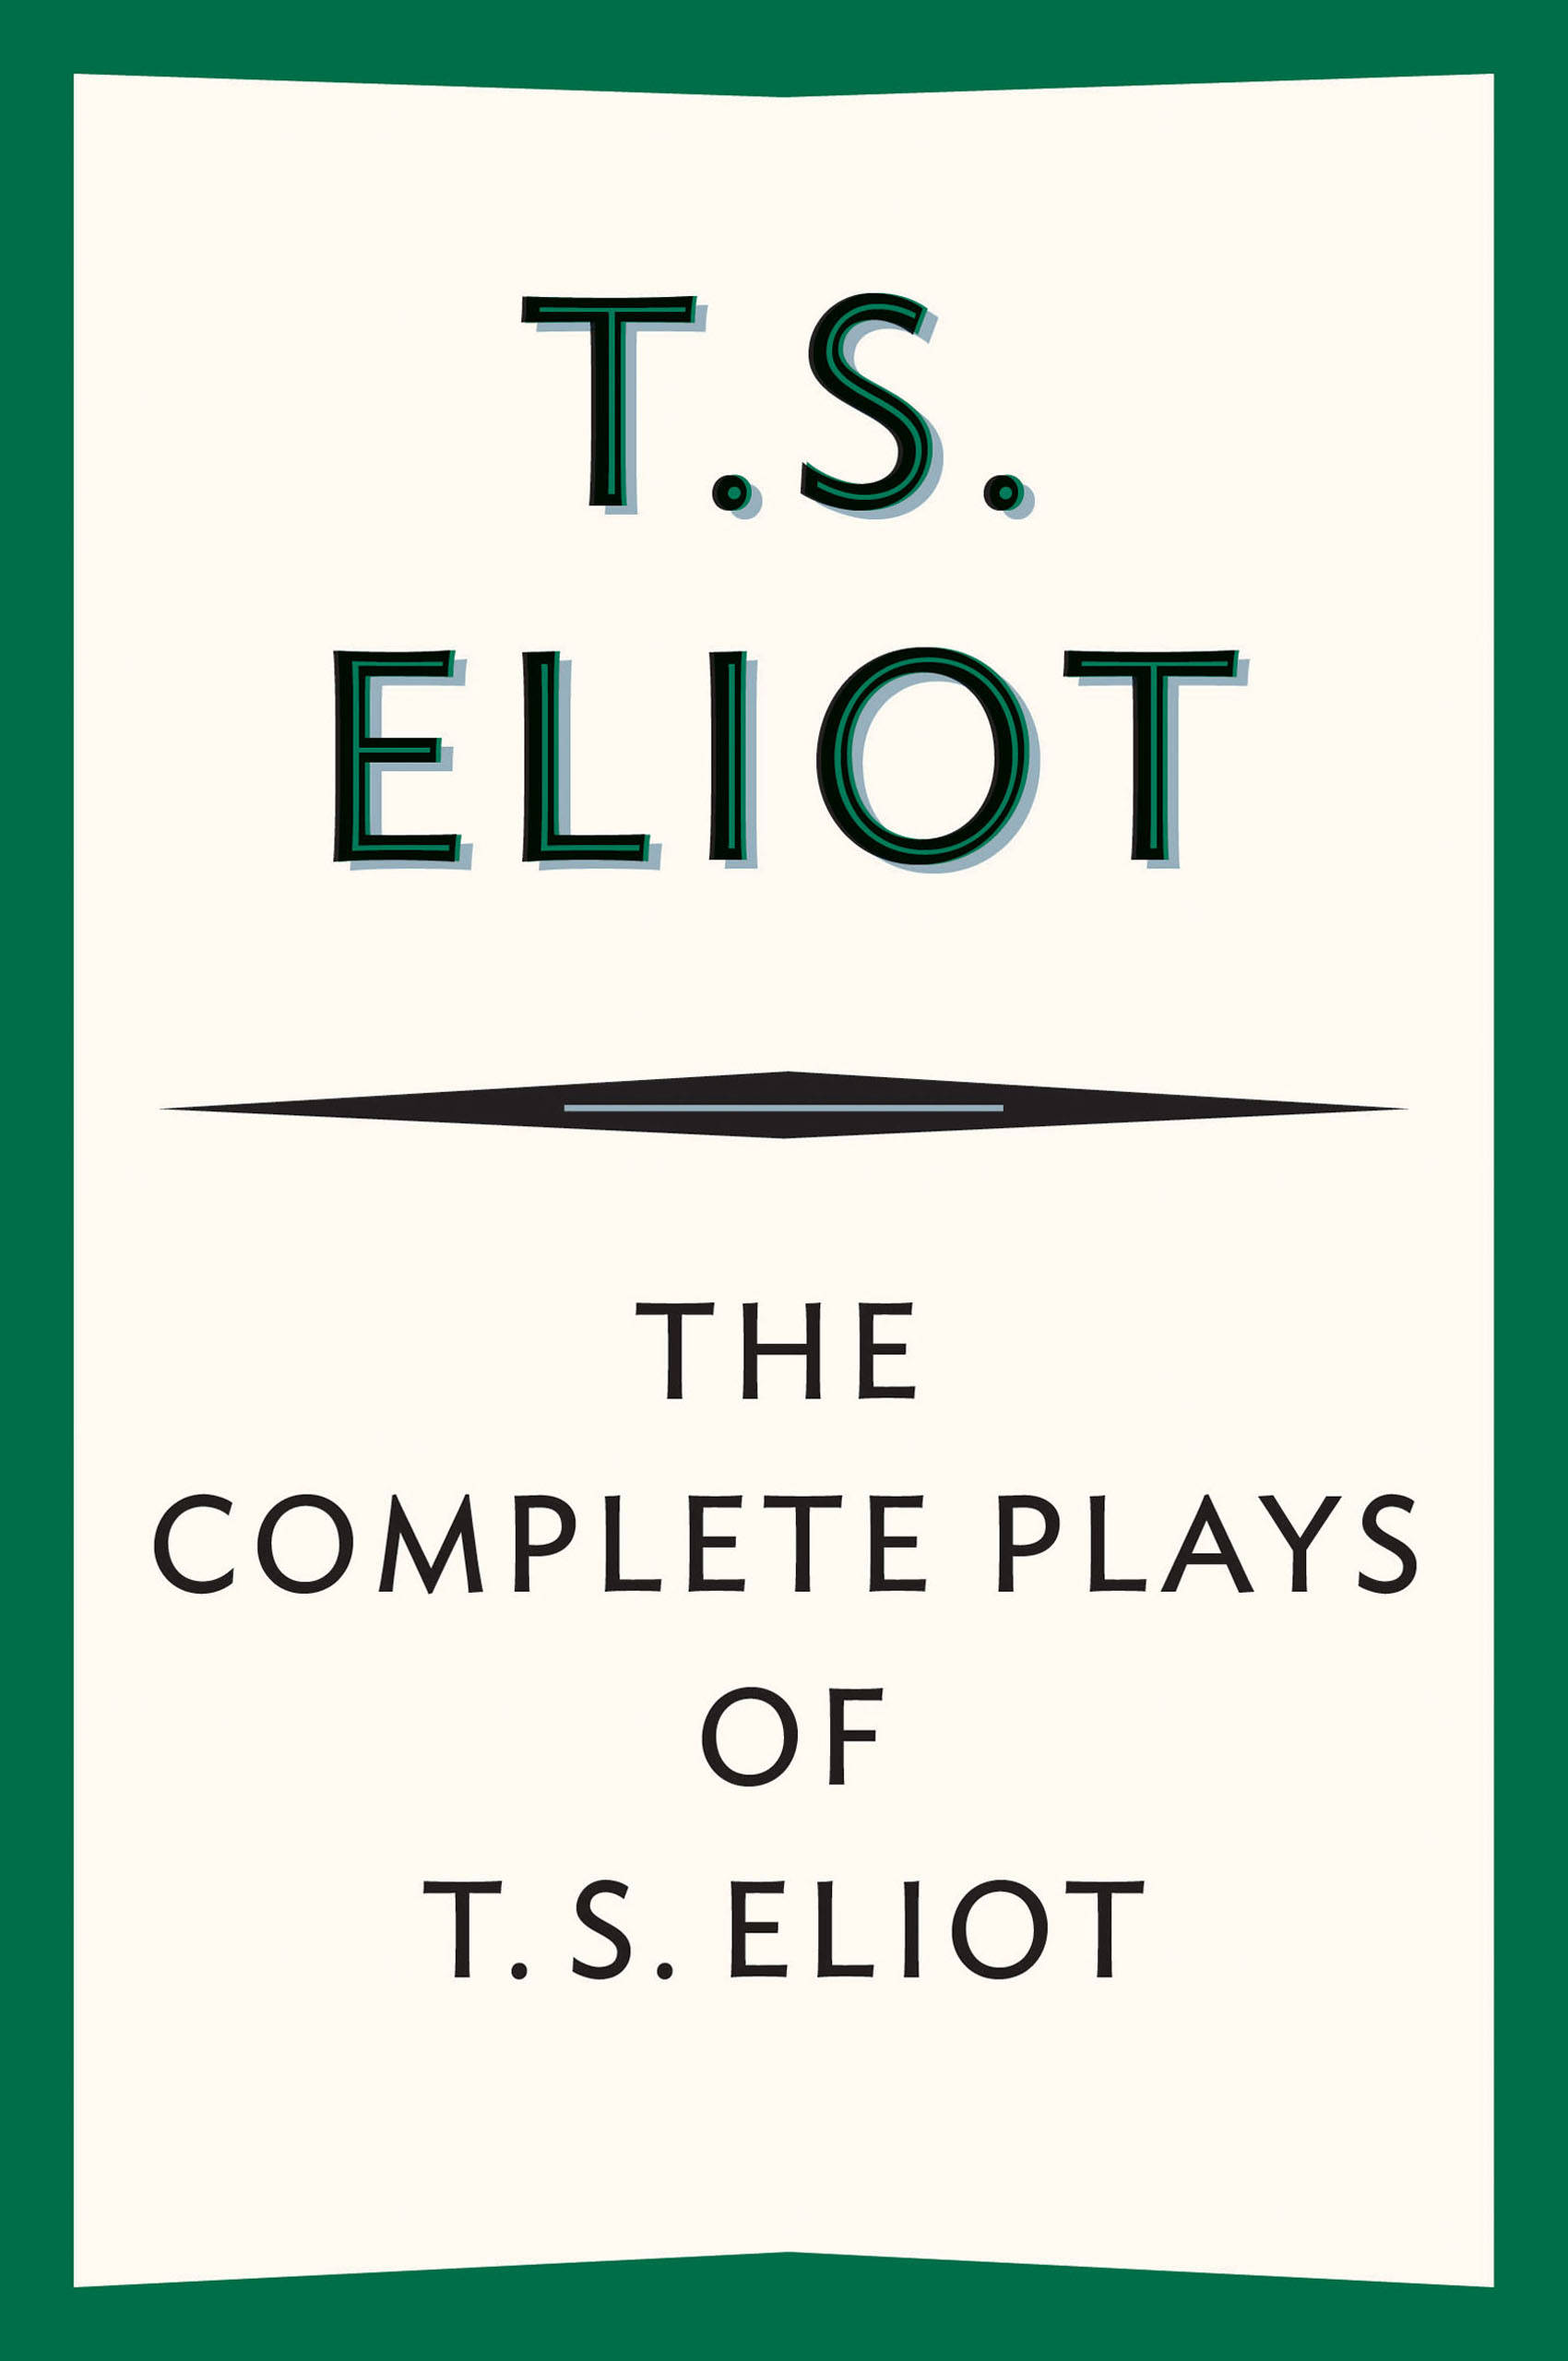 Complete Plays of T. S. Eliot